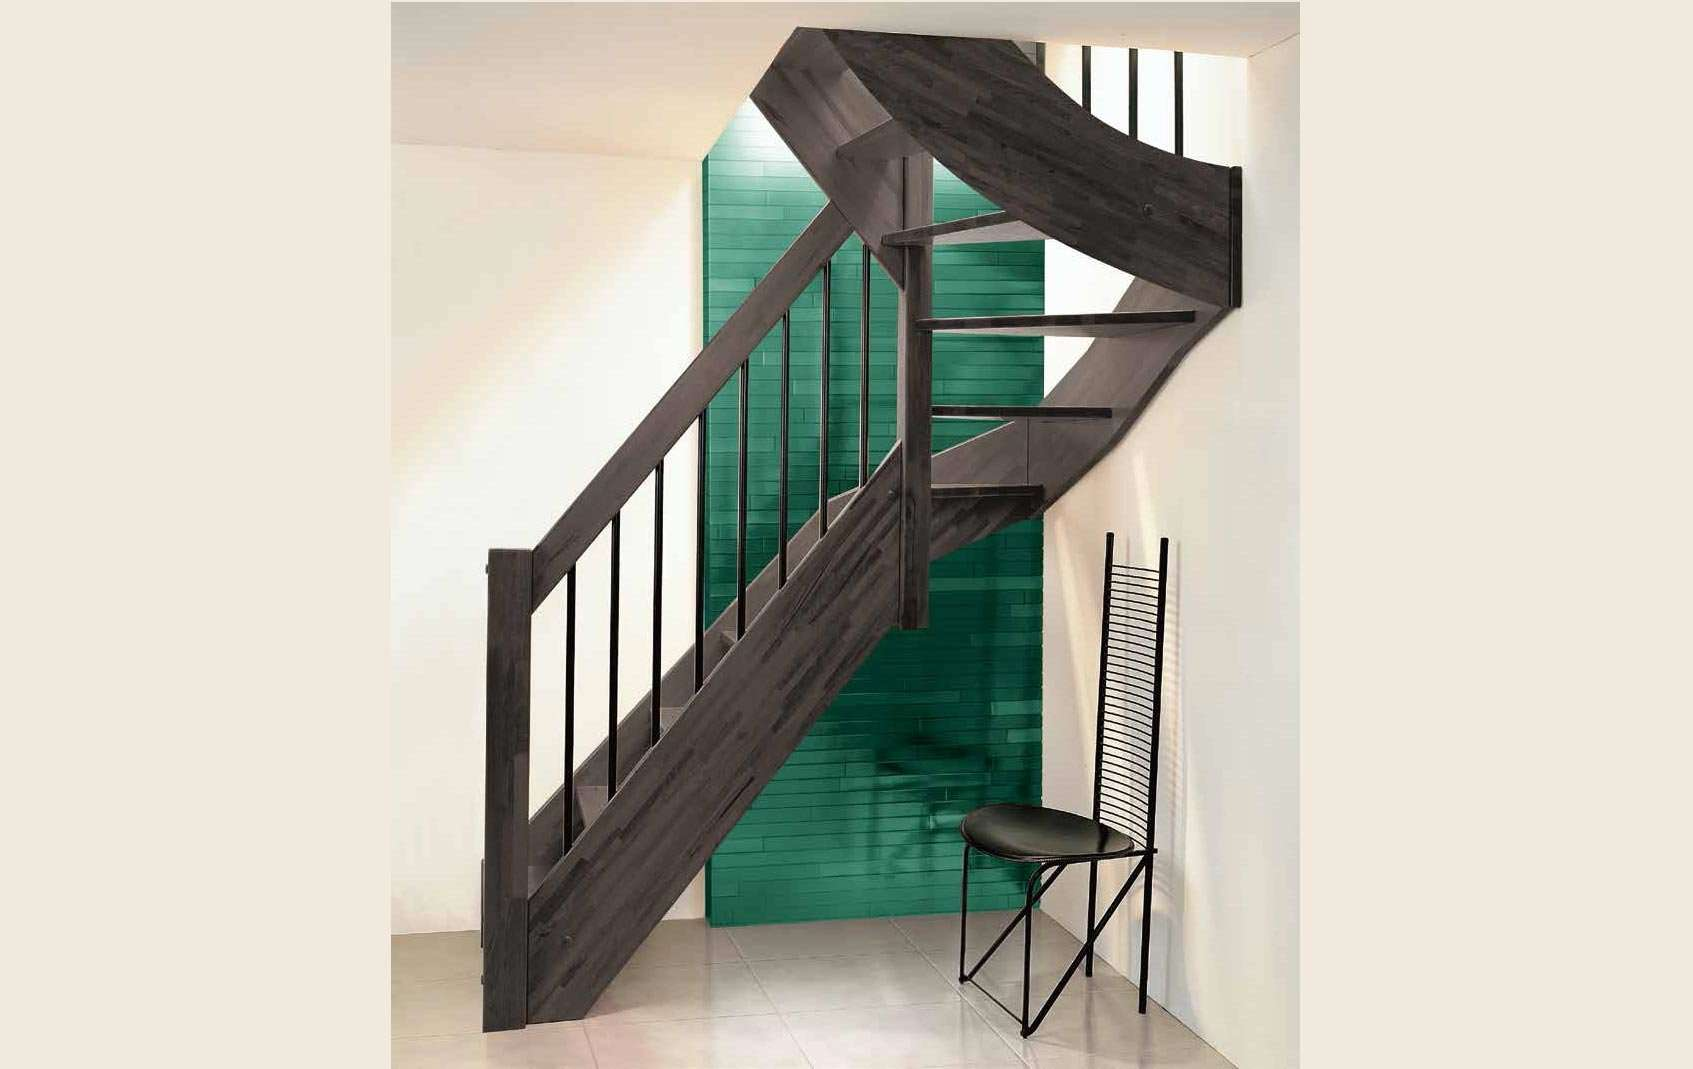 ᐅ Space Saver Stairs Space Saver Stairs Staircases